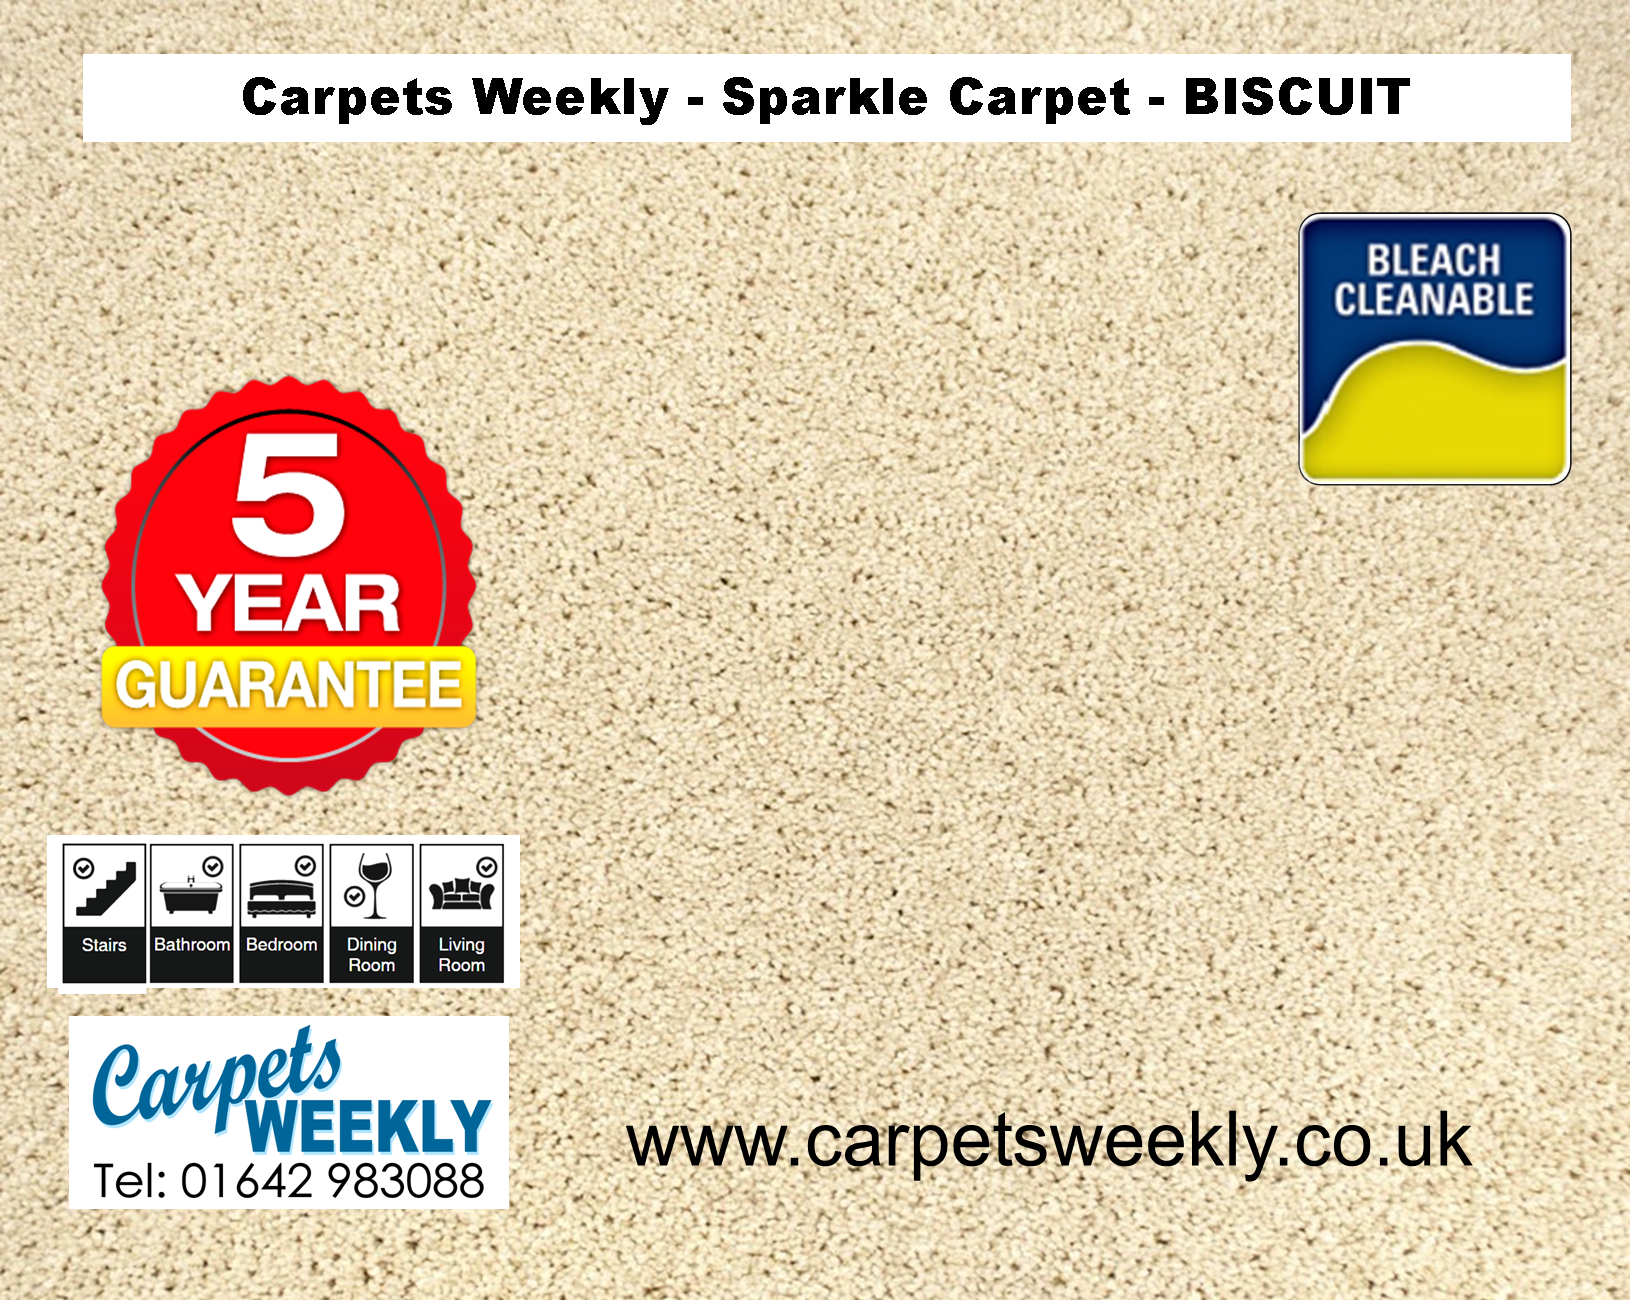 Biscuit Sparkle Carpet from Carpets Weekly